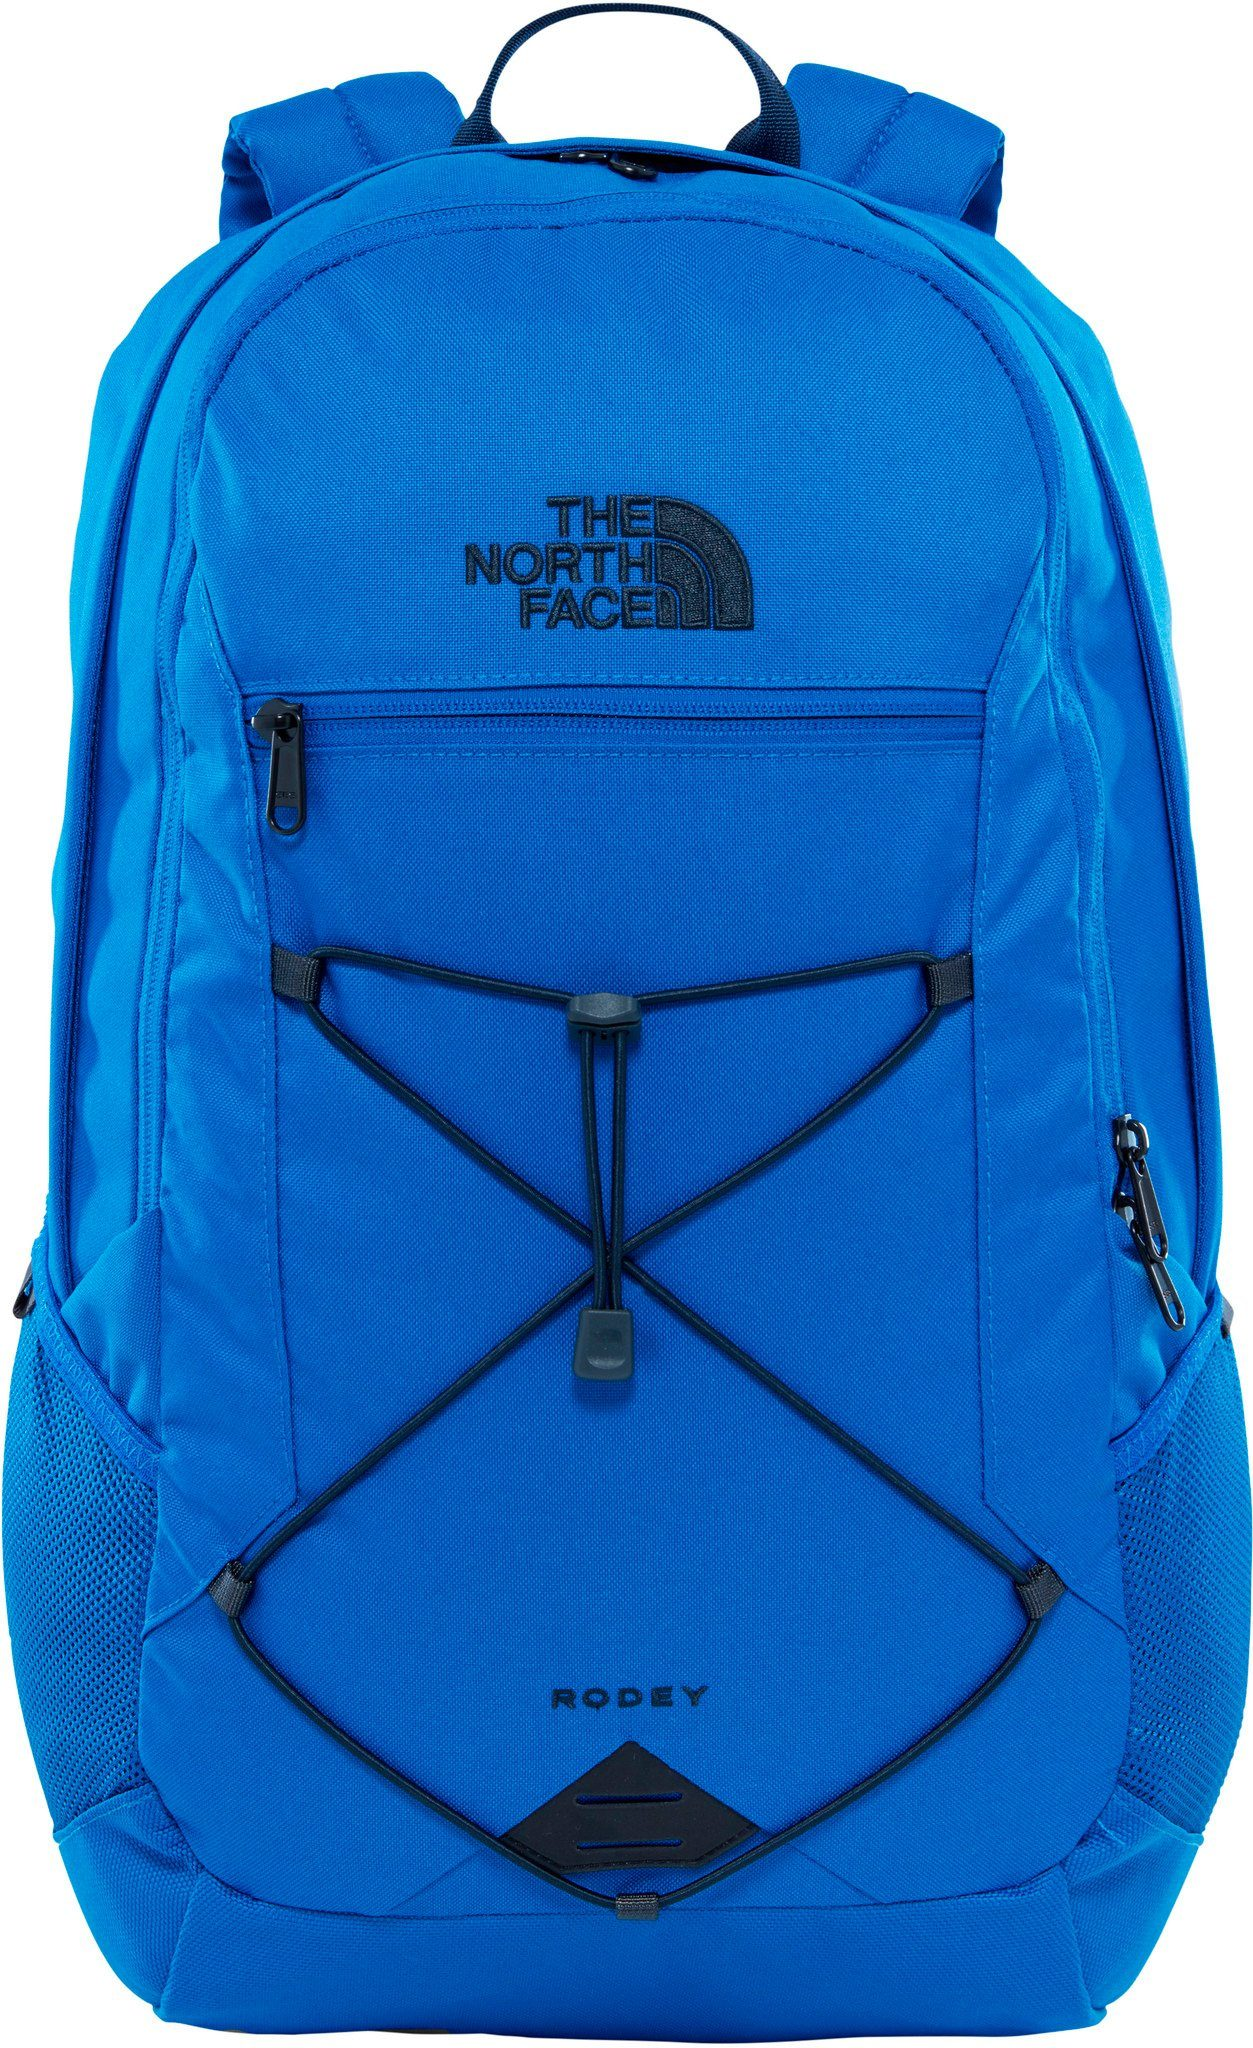 The North Face Wanderrucksack »Rodey Backpack 27 L«